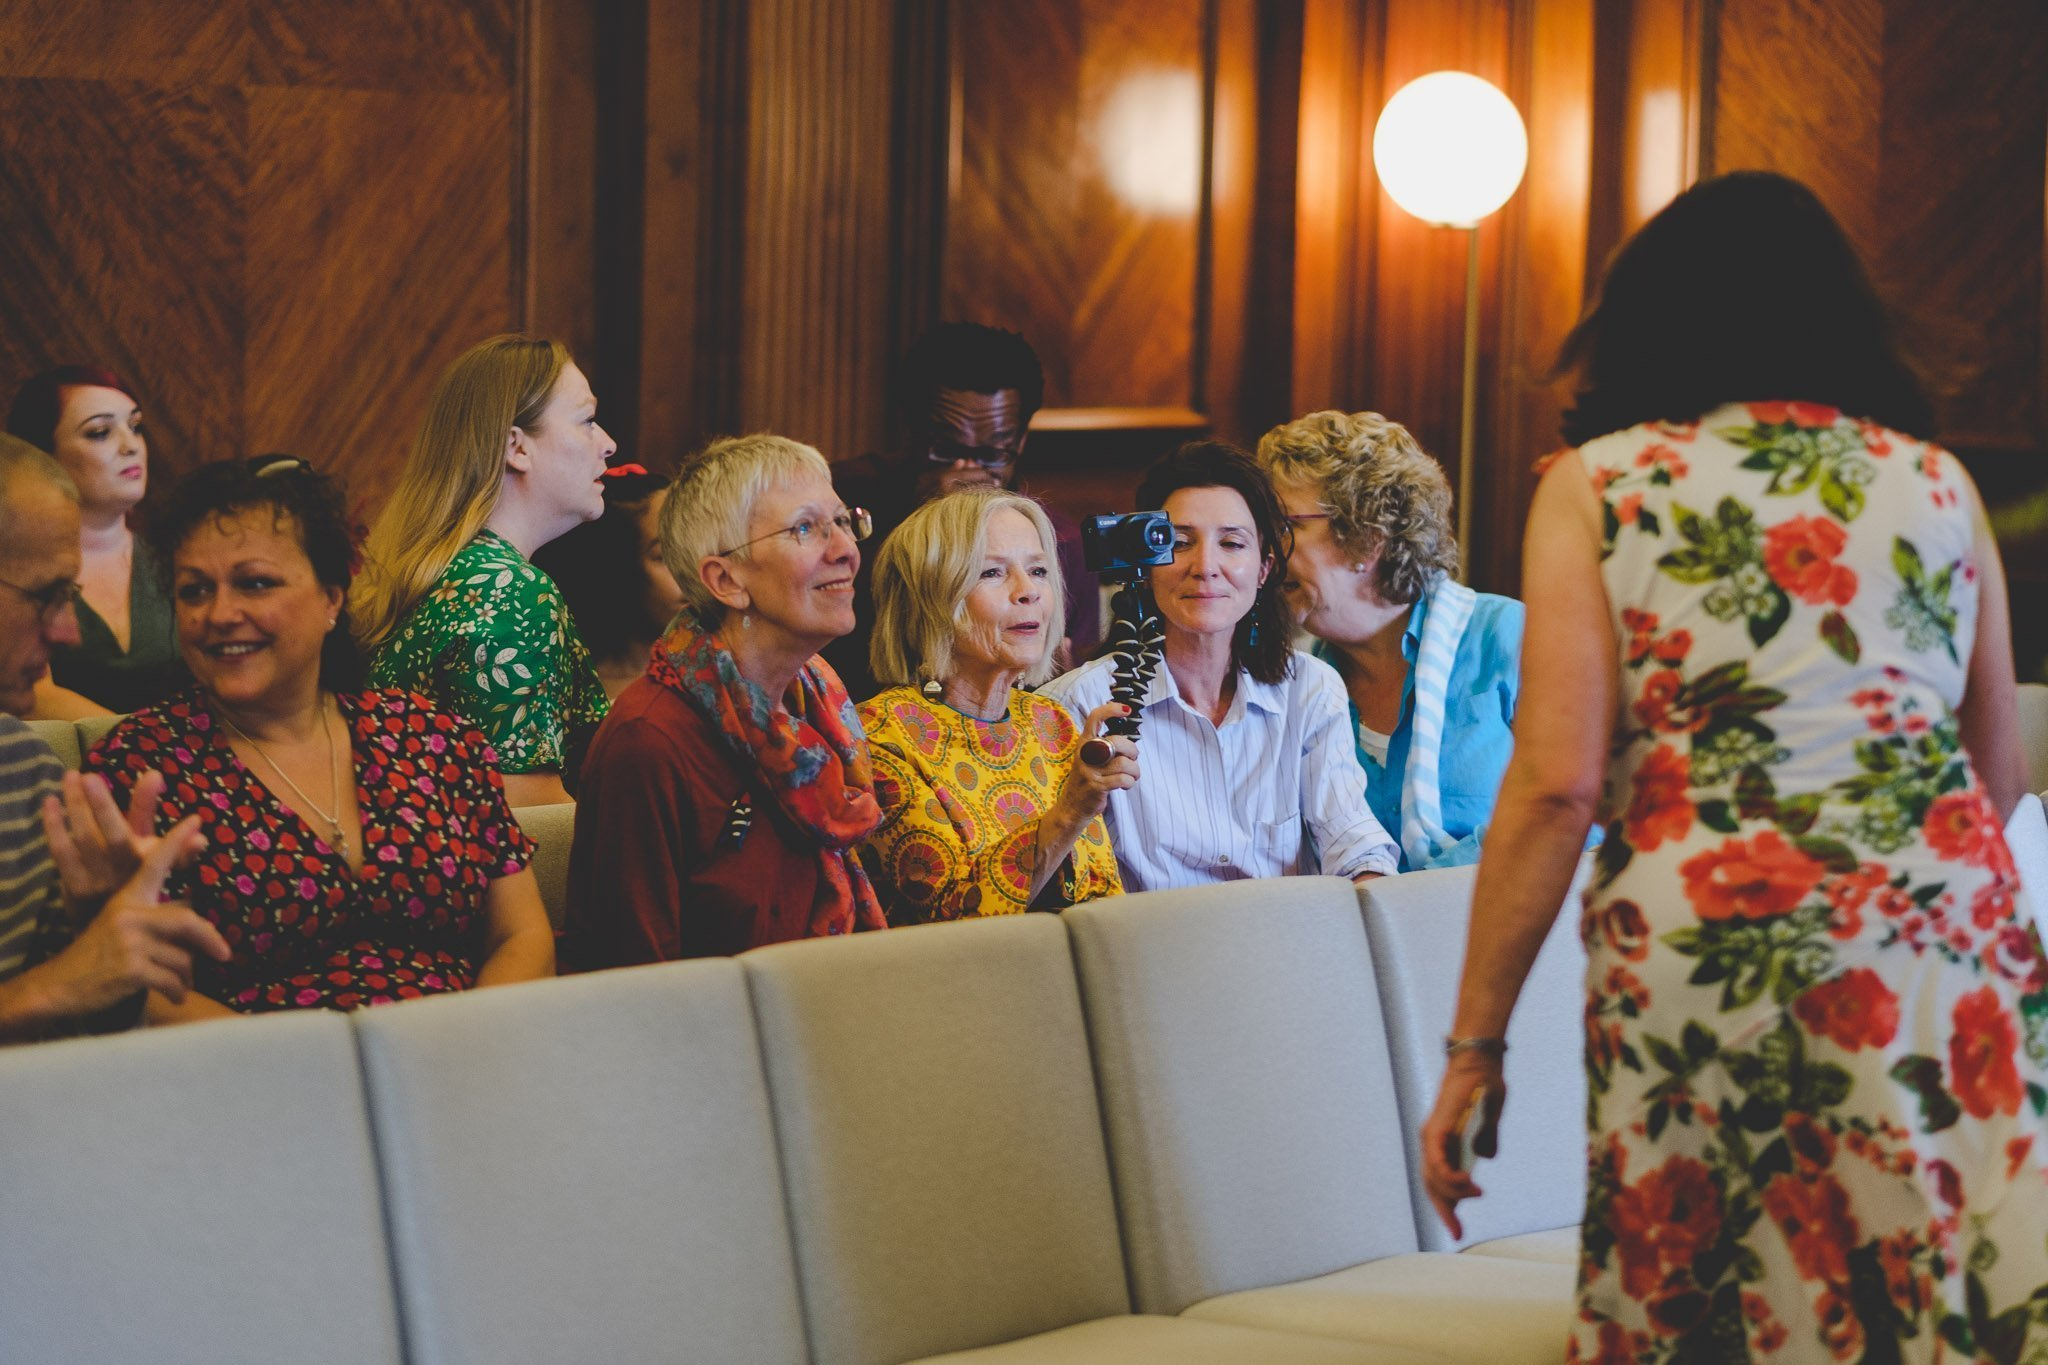 Wedding guests waiting in the Westminster Room of the Old Marylebone Town Hall London